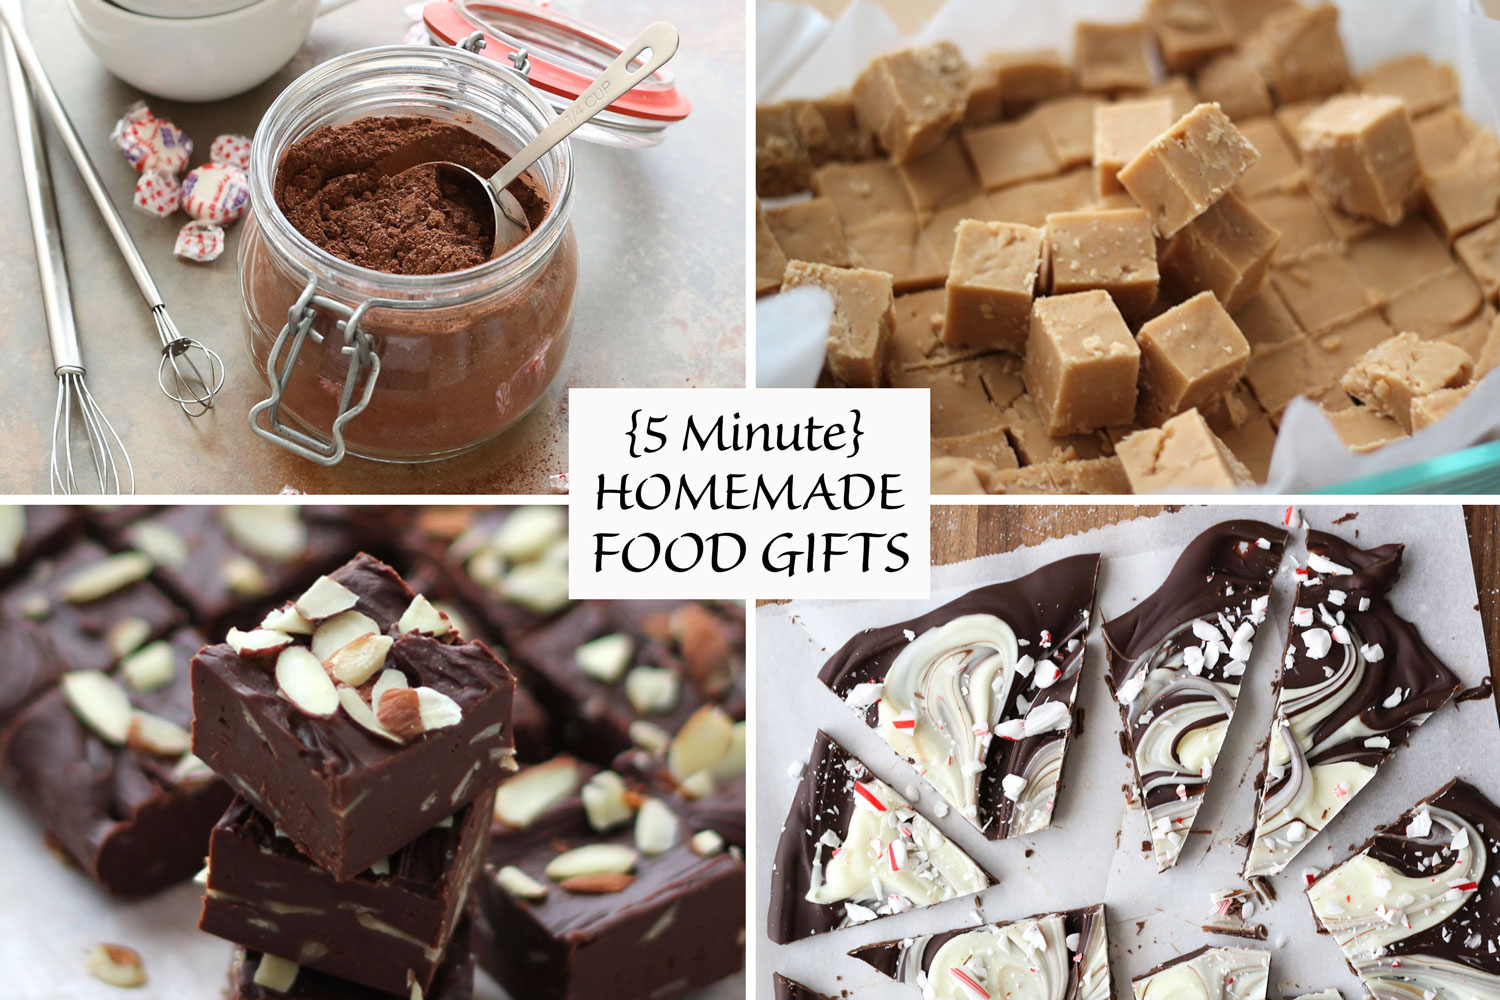 Five Minute Homemade Food Gifts - recipes and gifts for any occasion!